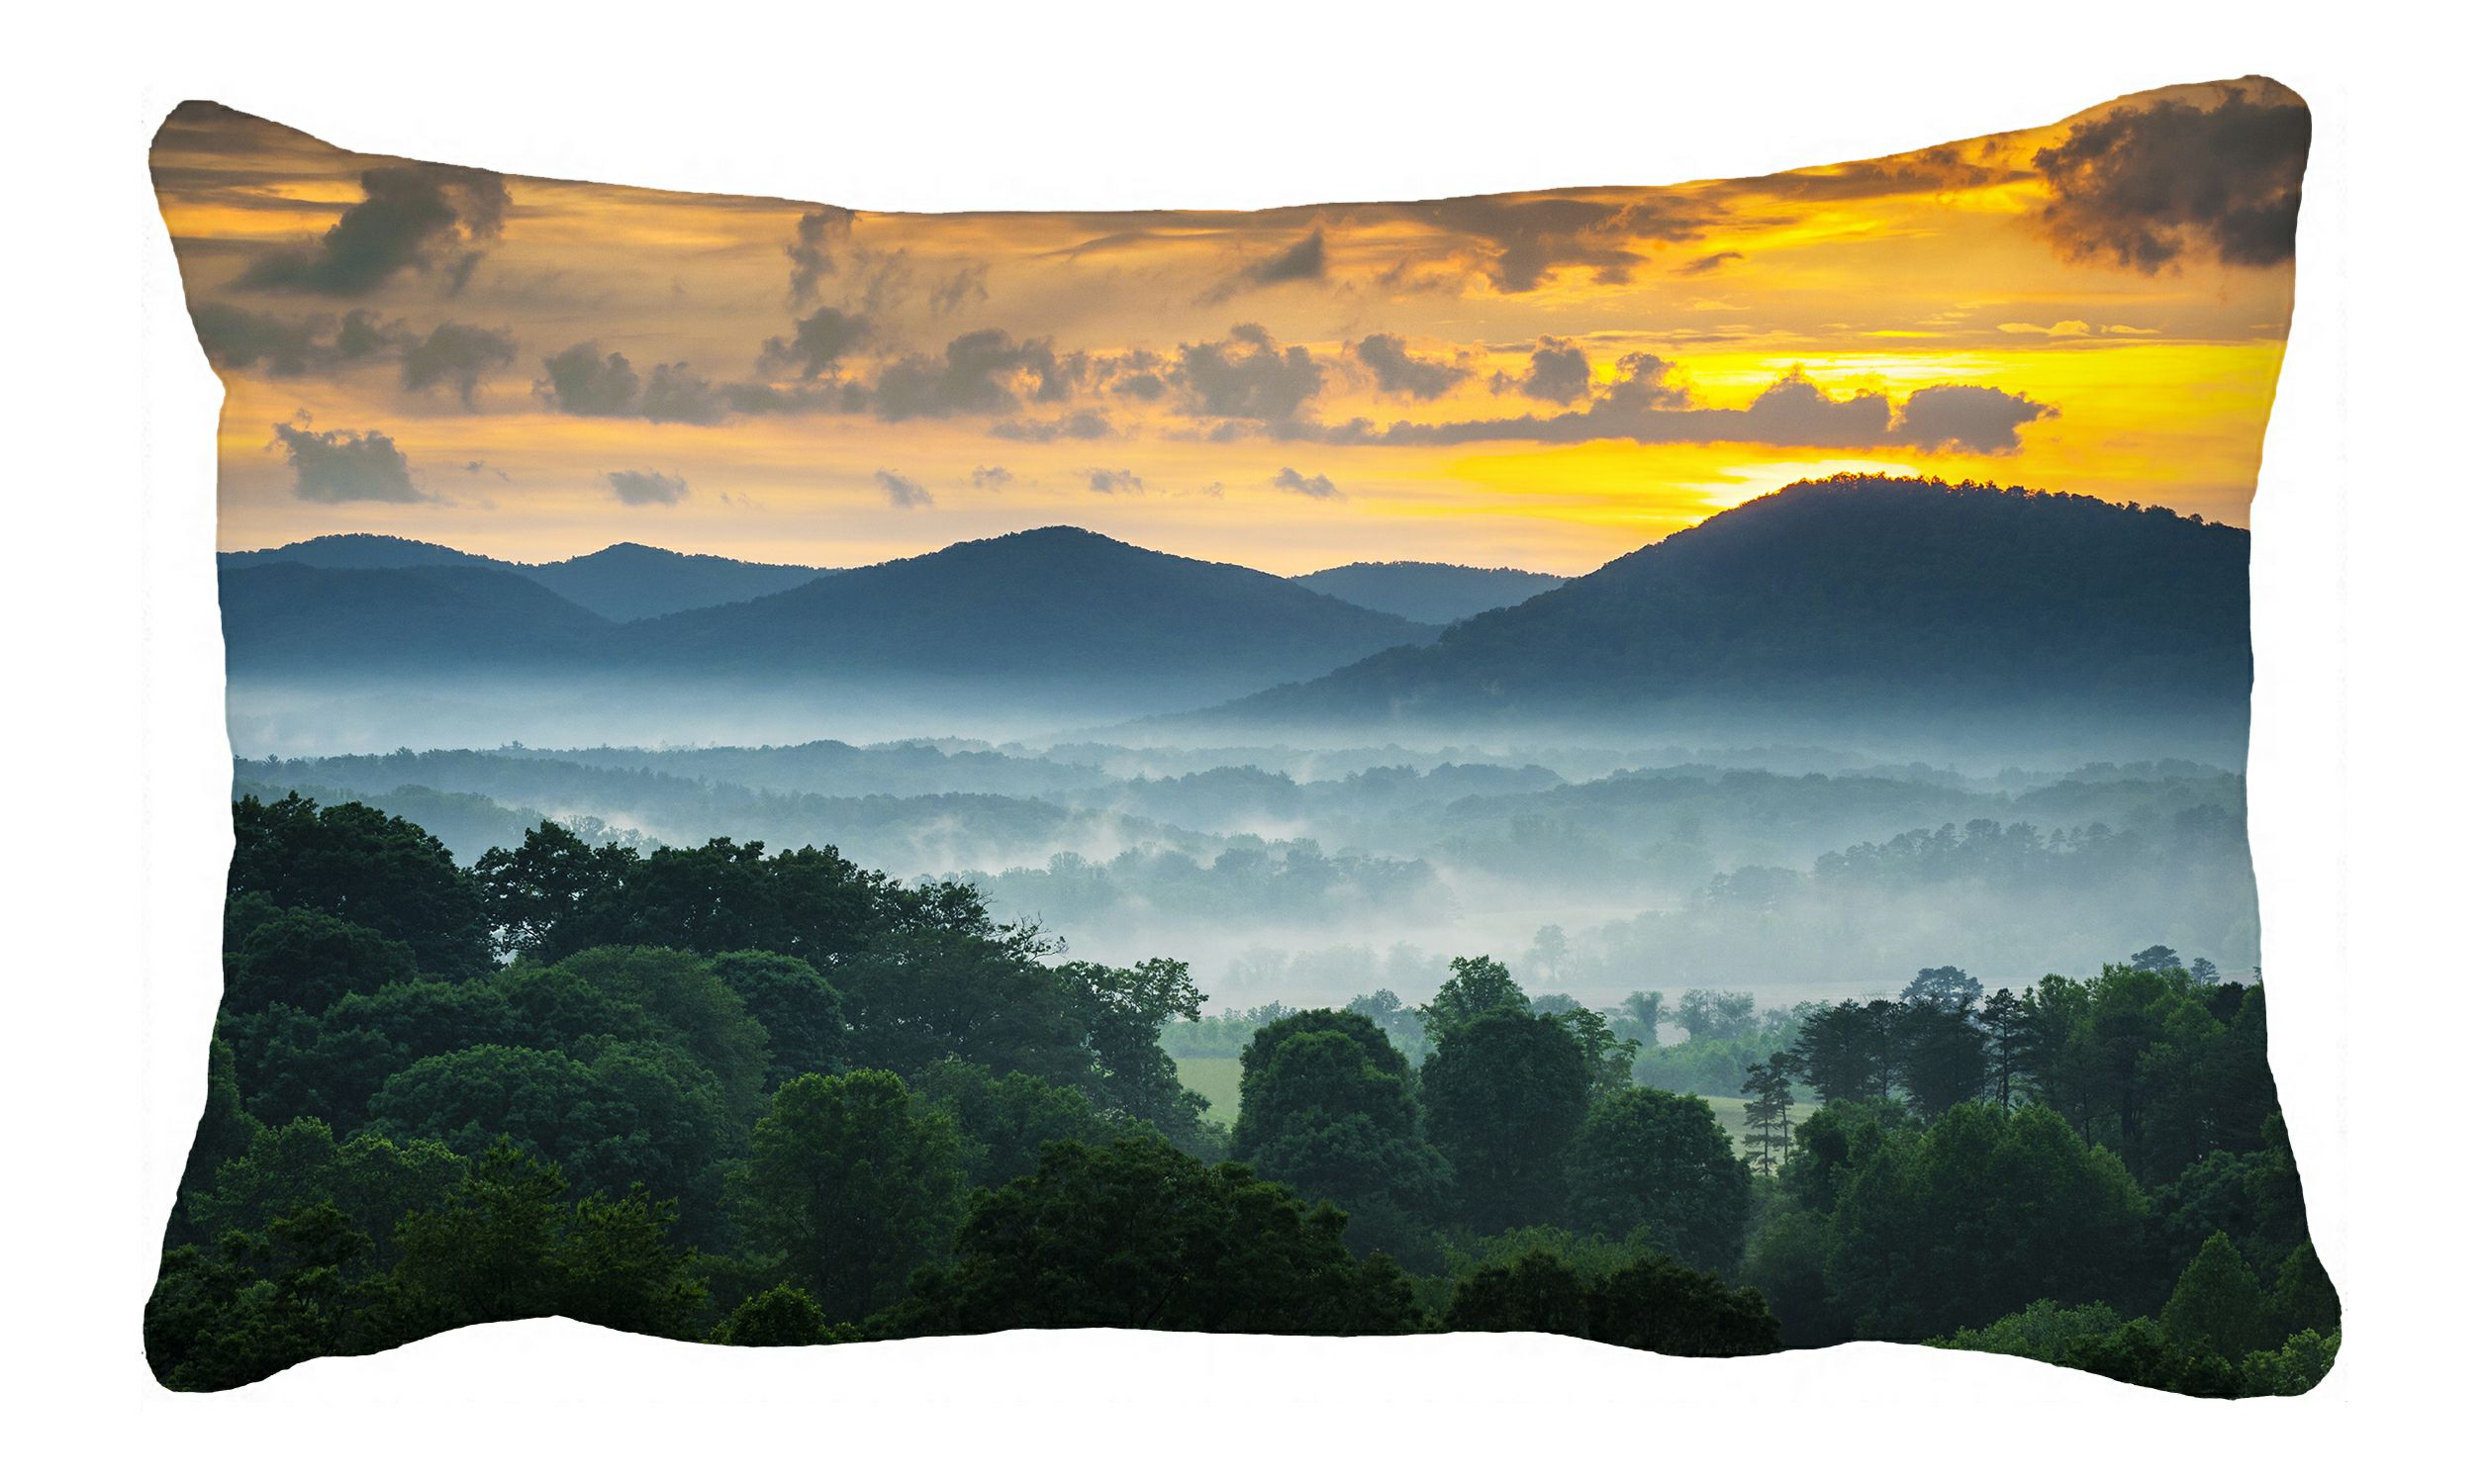 phfzk green forest pillow case fog landscape with mountains at sunset carolina pillowcase throw pillow cushion cover two sides size 20x30 inches